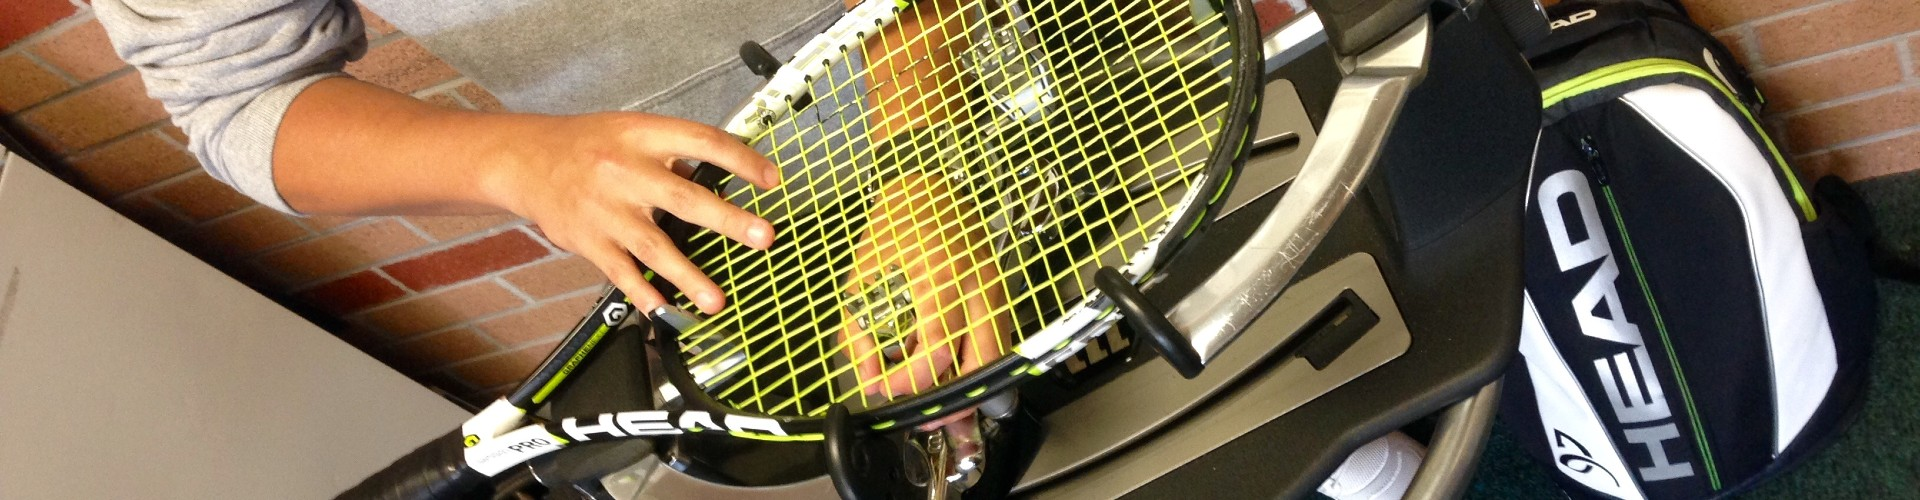 Restringing a Tennis raquet